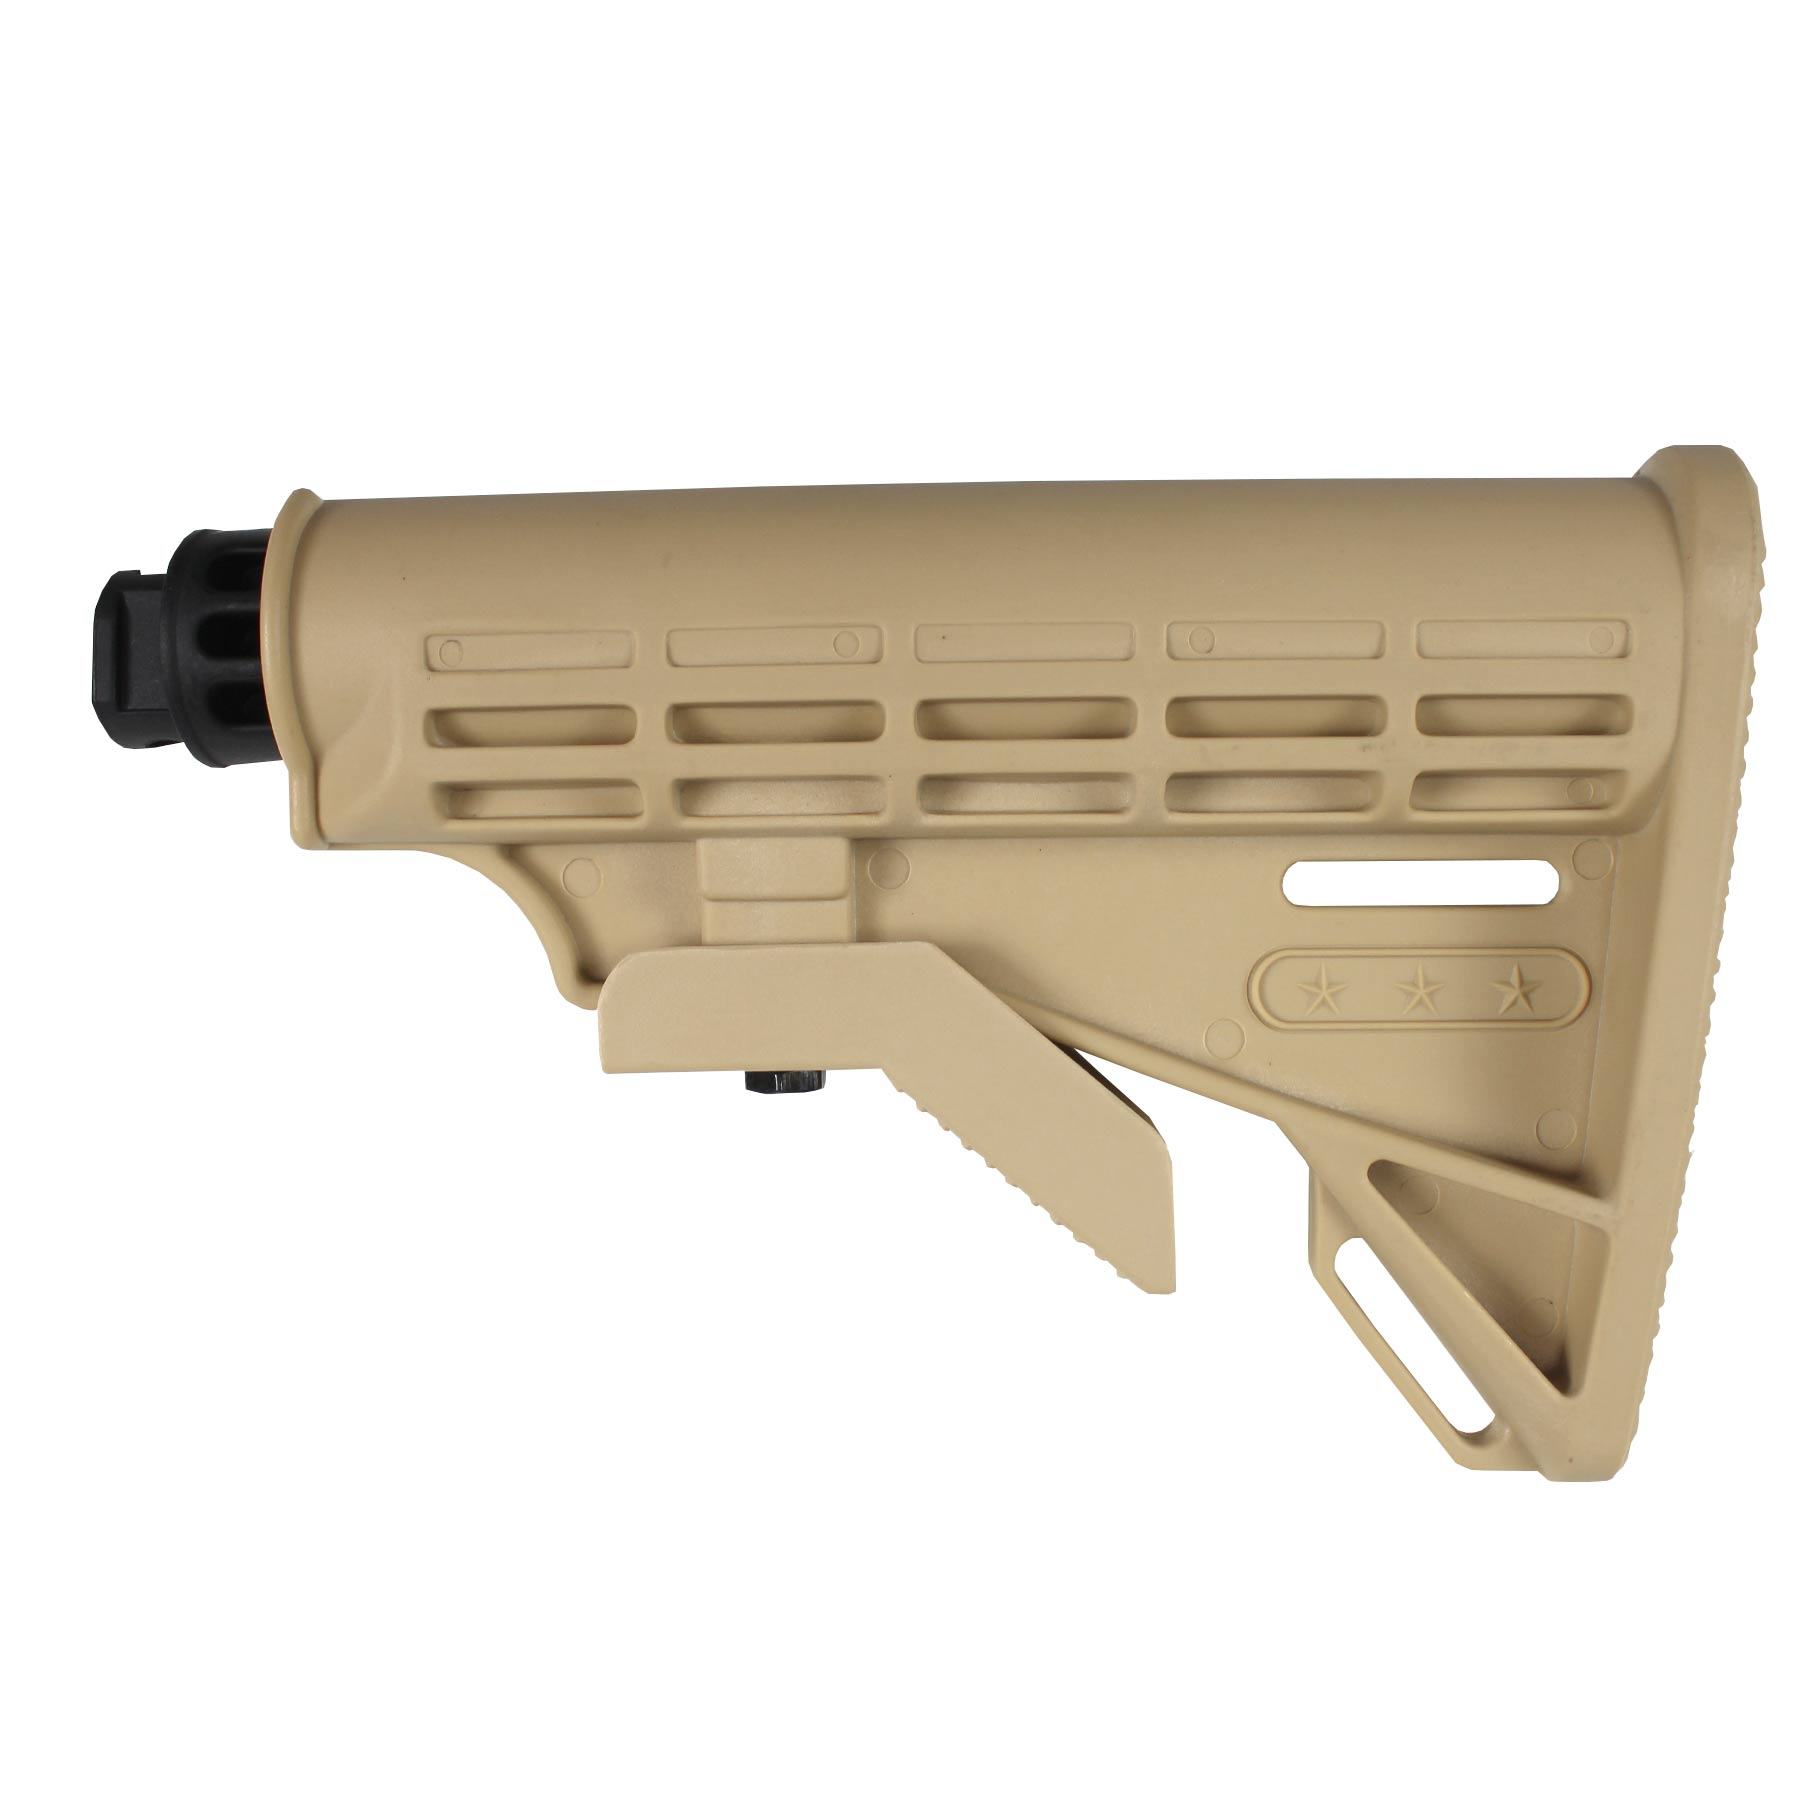 Tippmann Cronus Collapsible Stock Tan TA06213